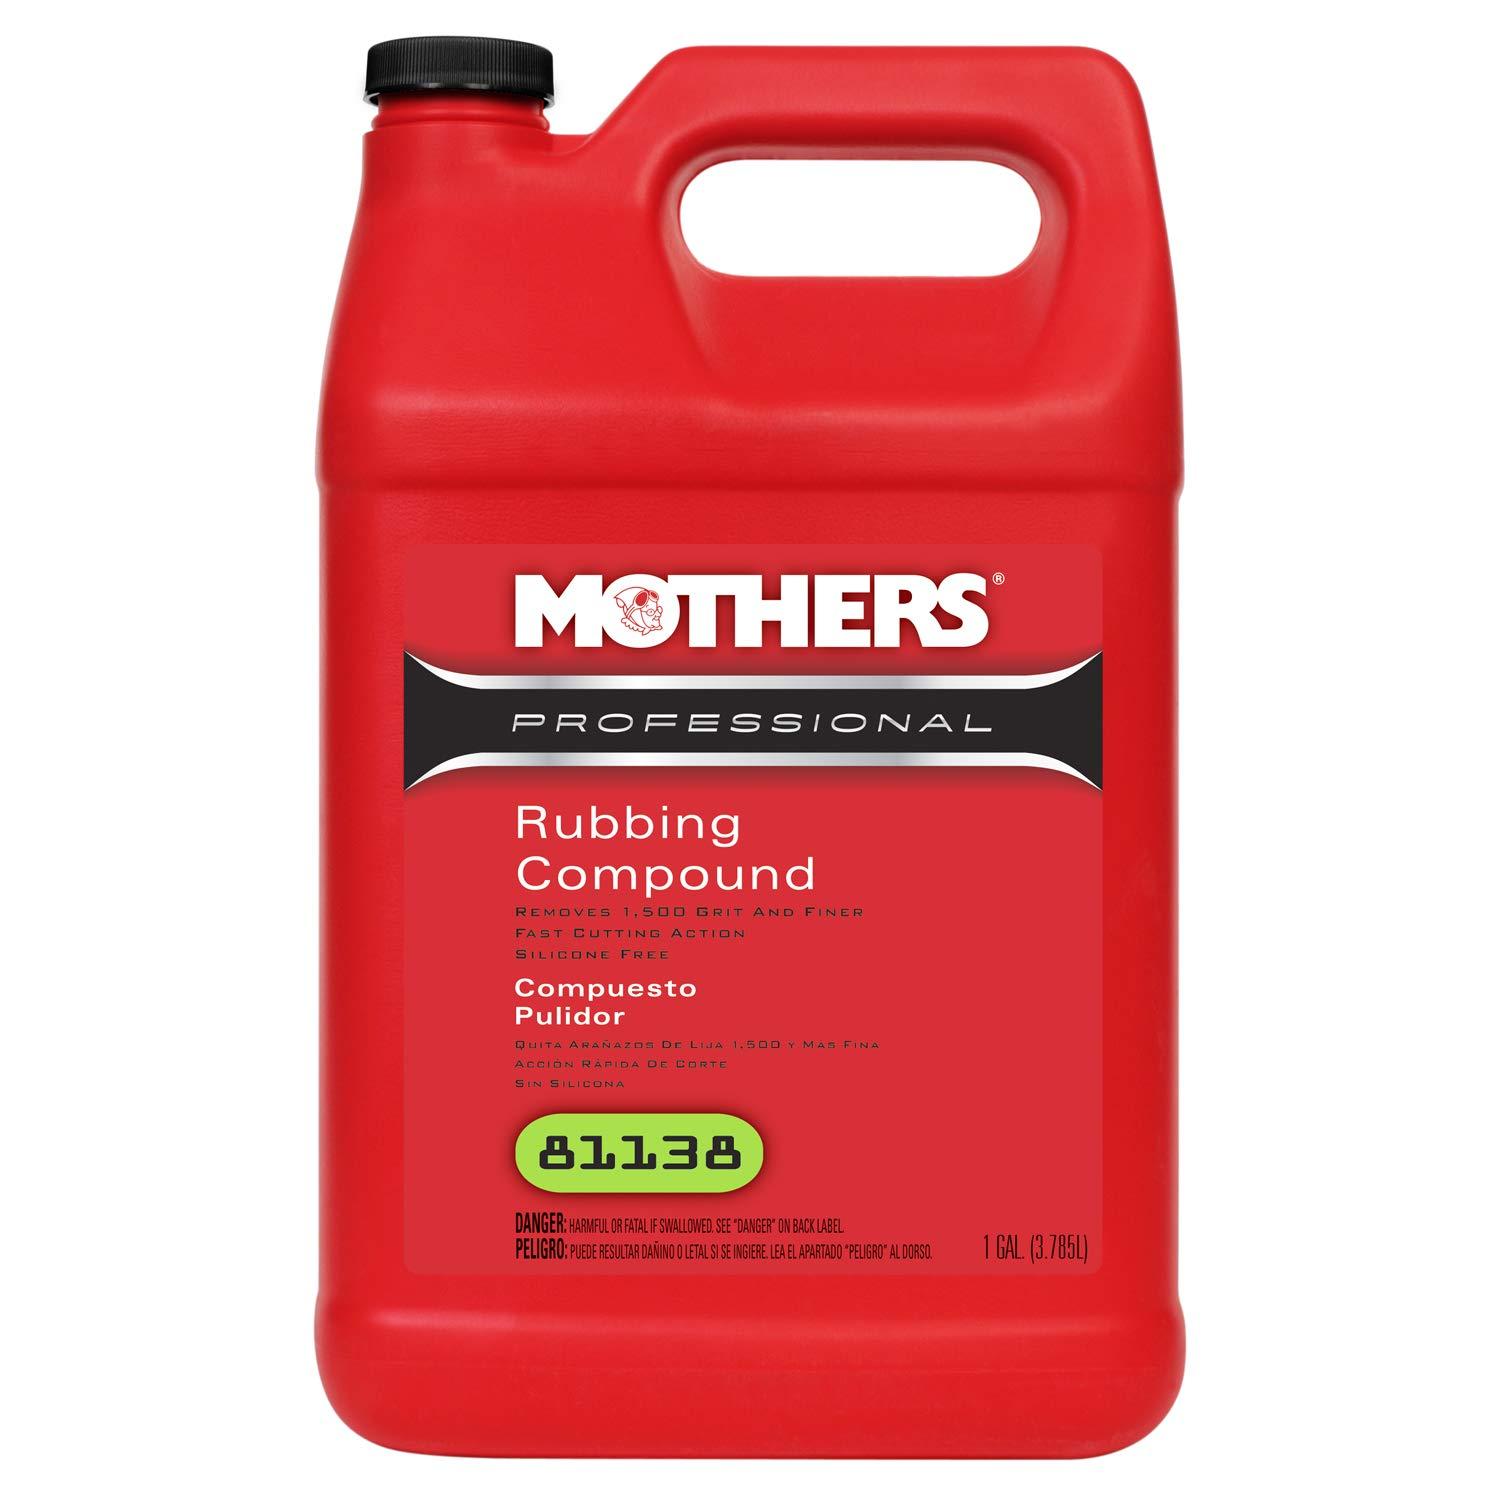 Mothers 81138 Professional Rubbing Compound - 1 Gallon